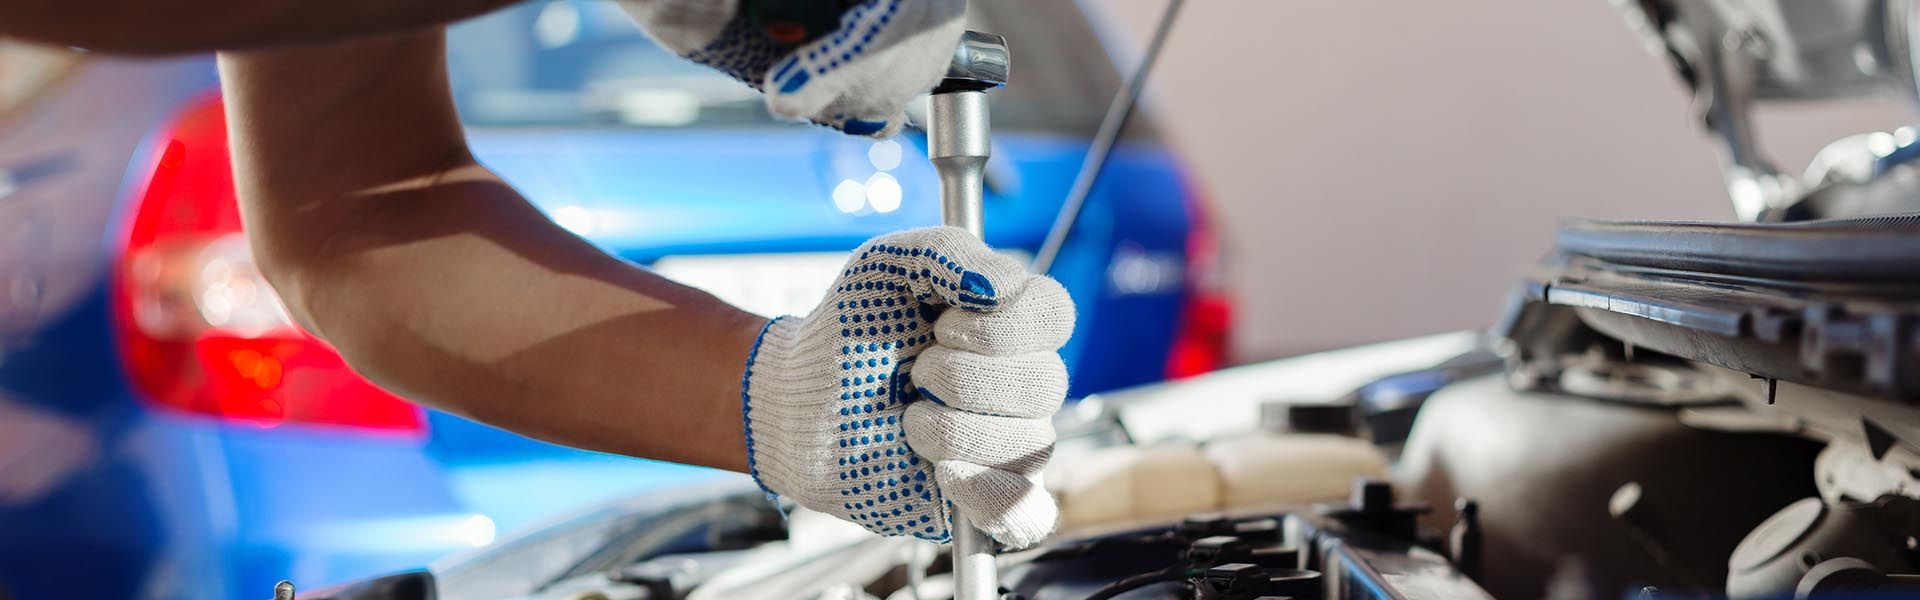 car servicing glenrothes fife